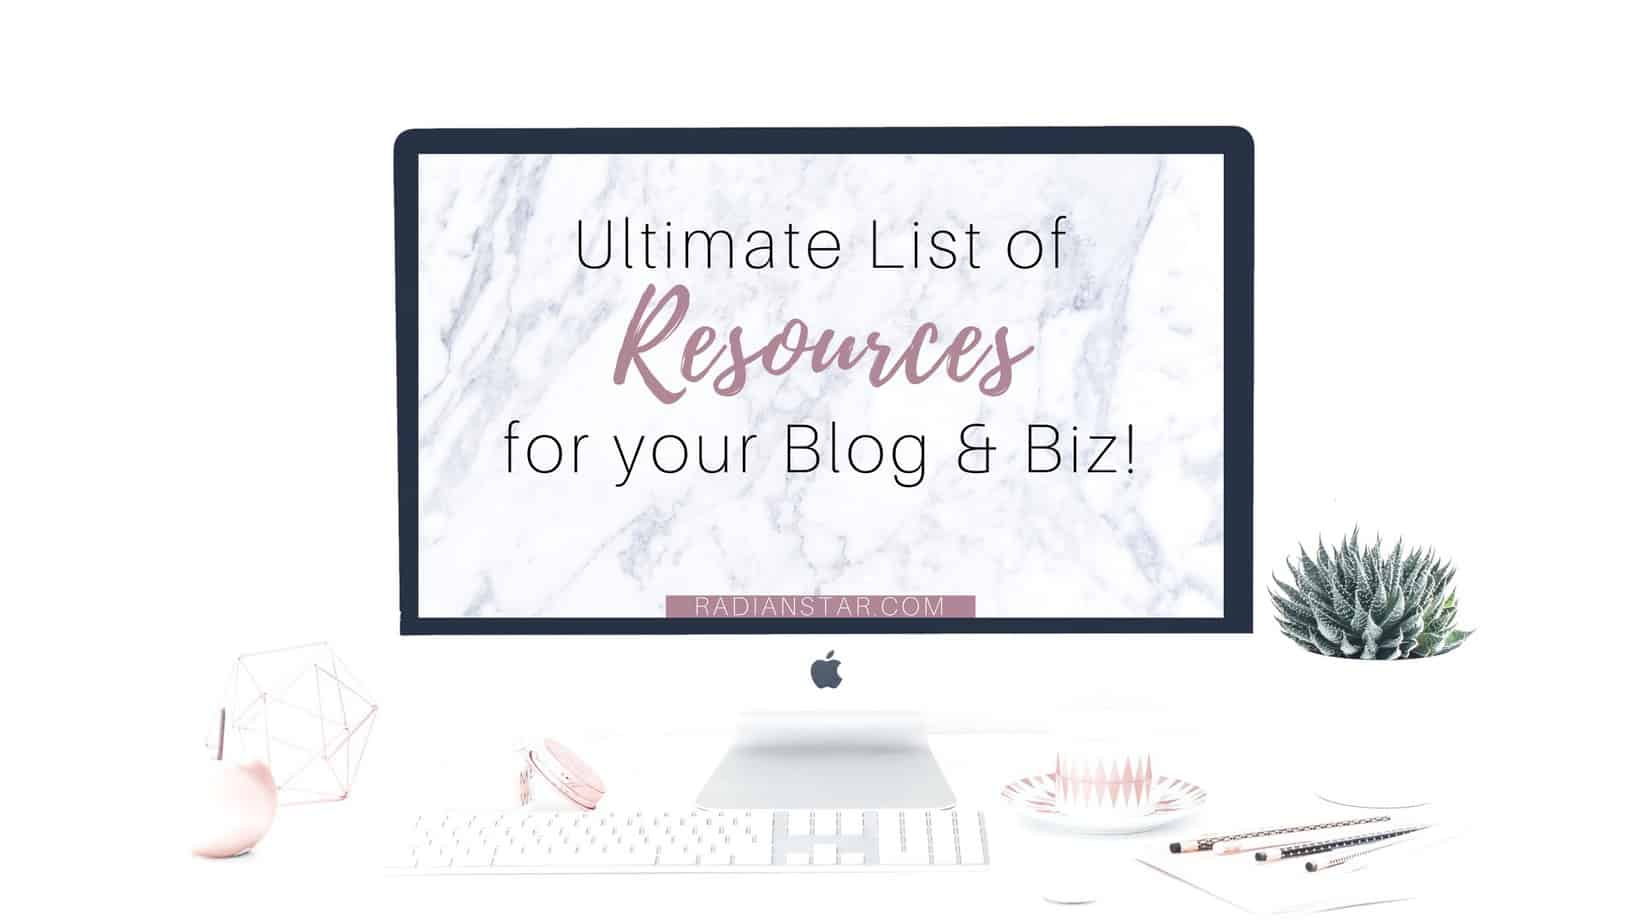 Ultimate List of Resources for Blog and Business